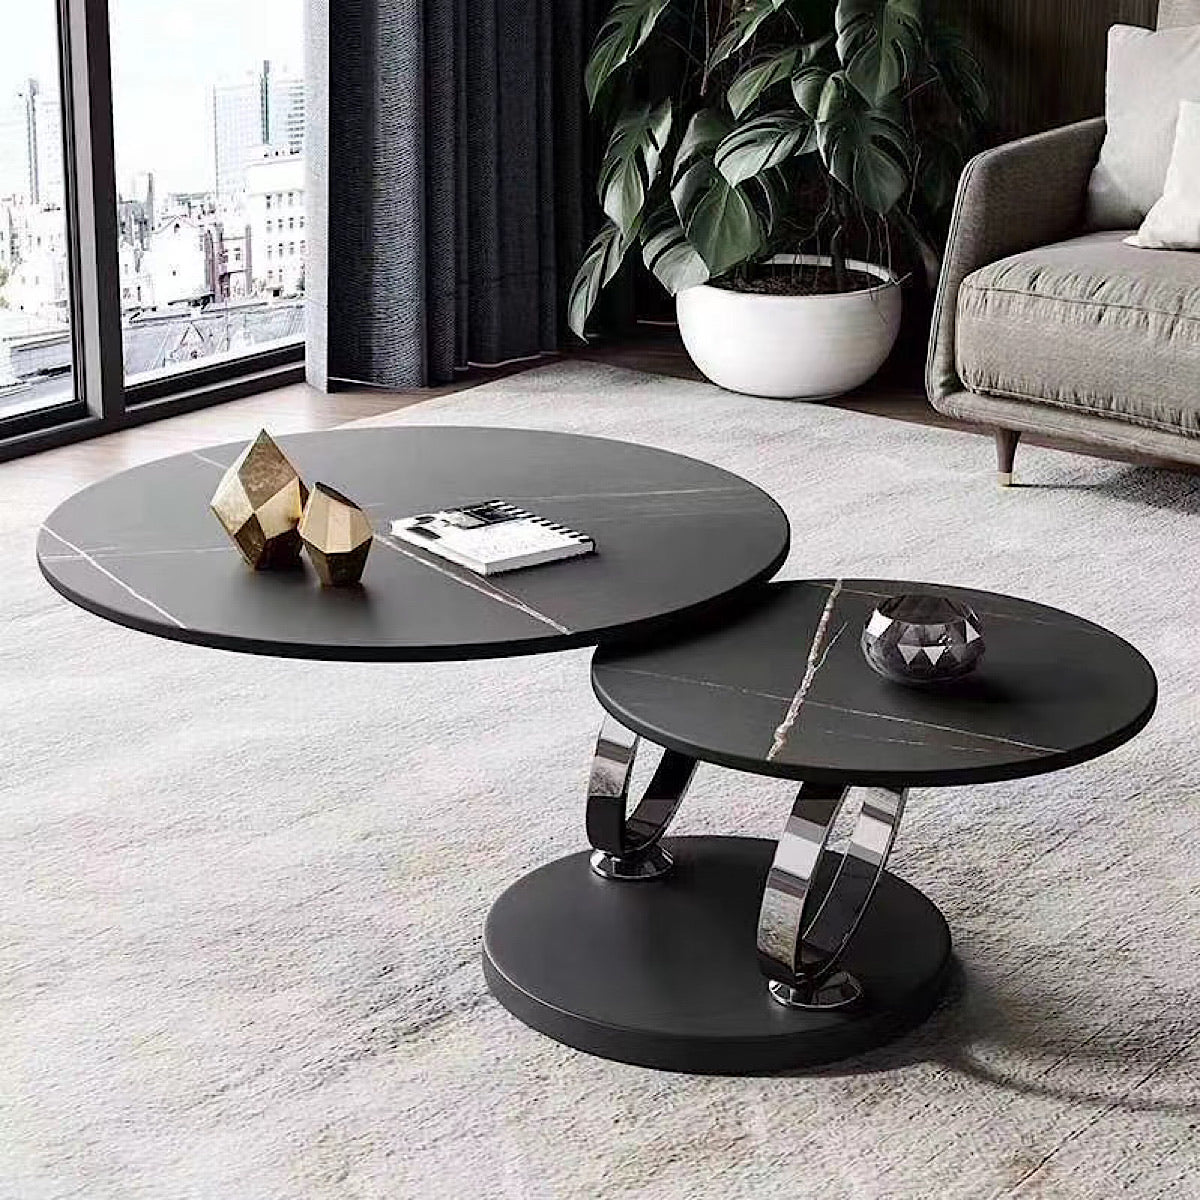 Stylz Coffee Table - mhomefurniture